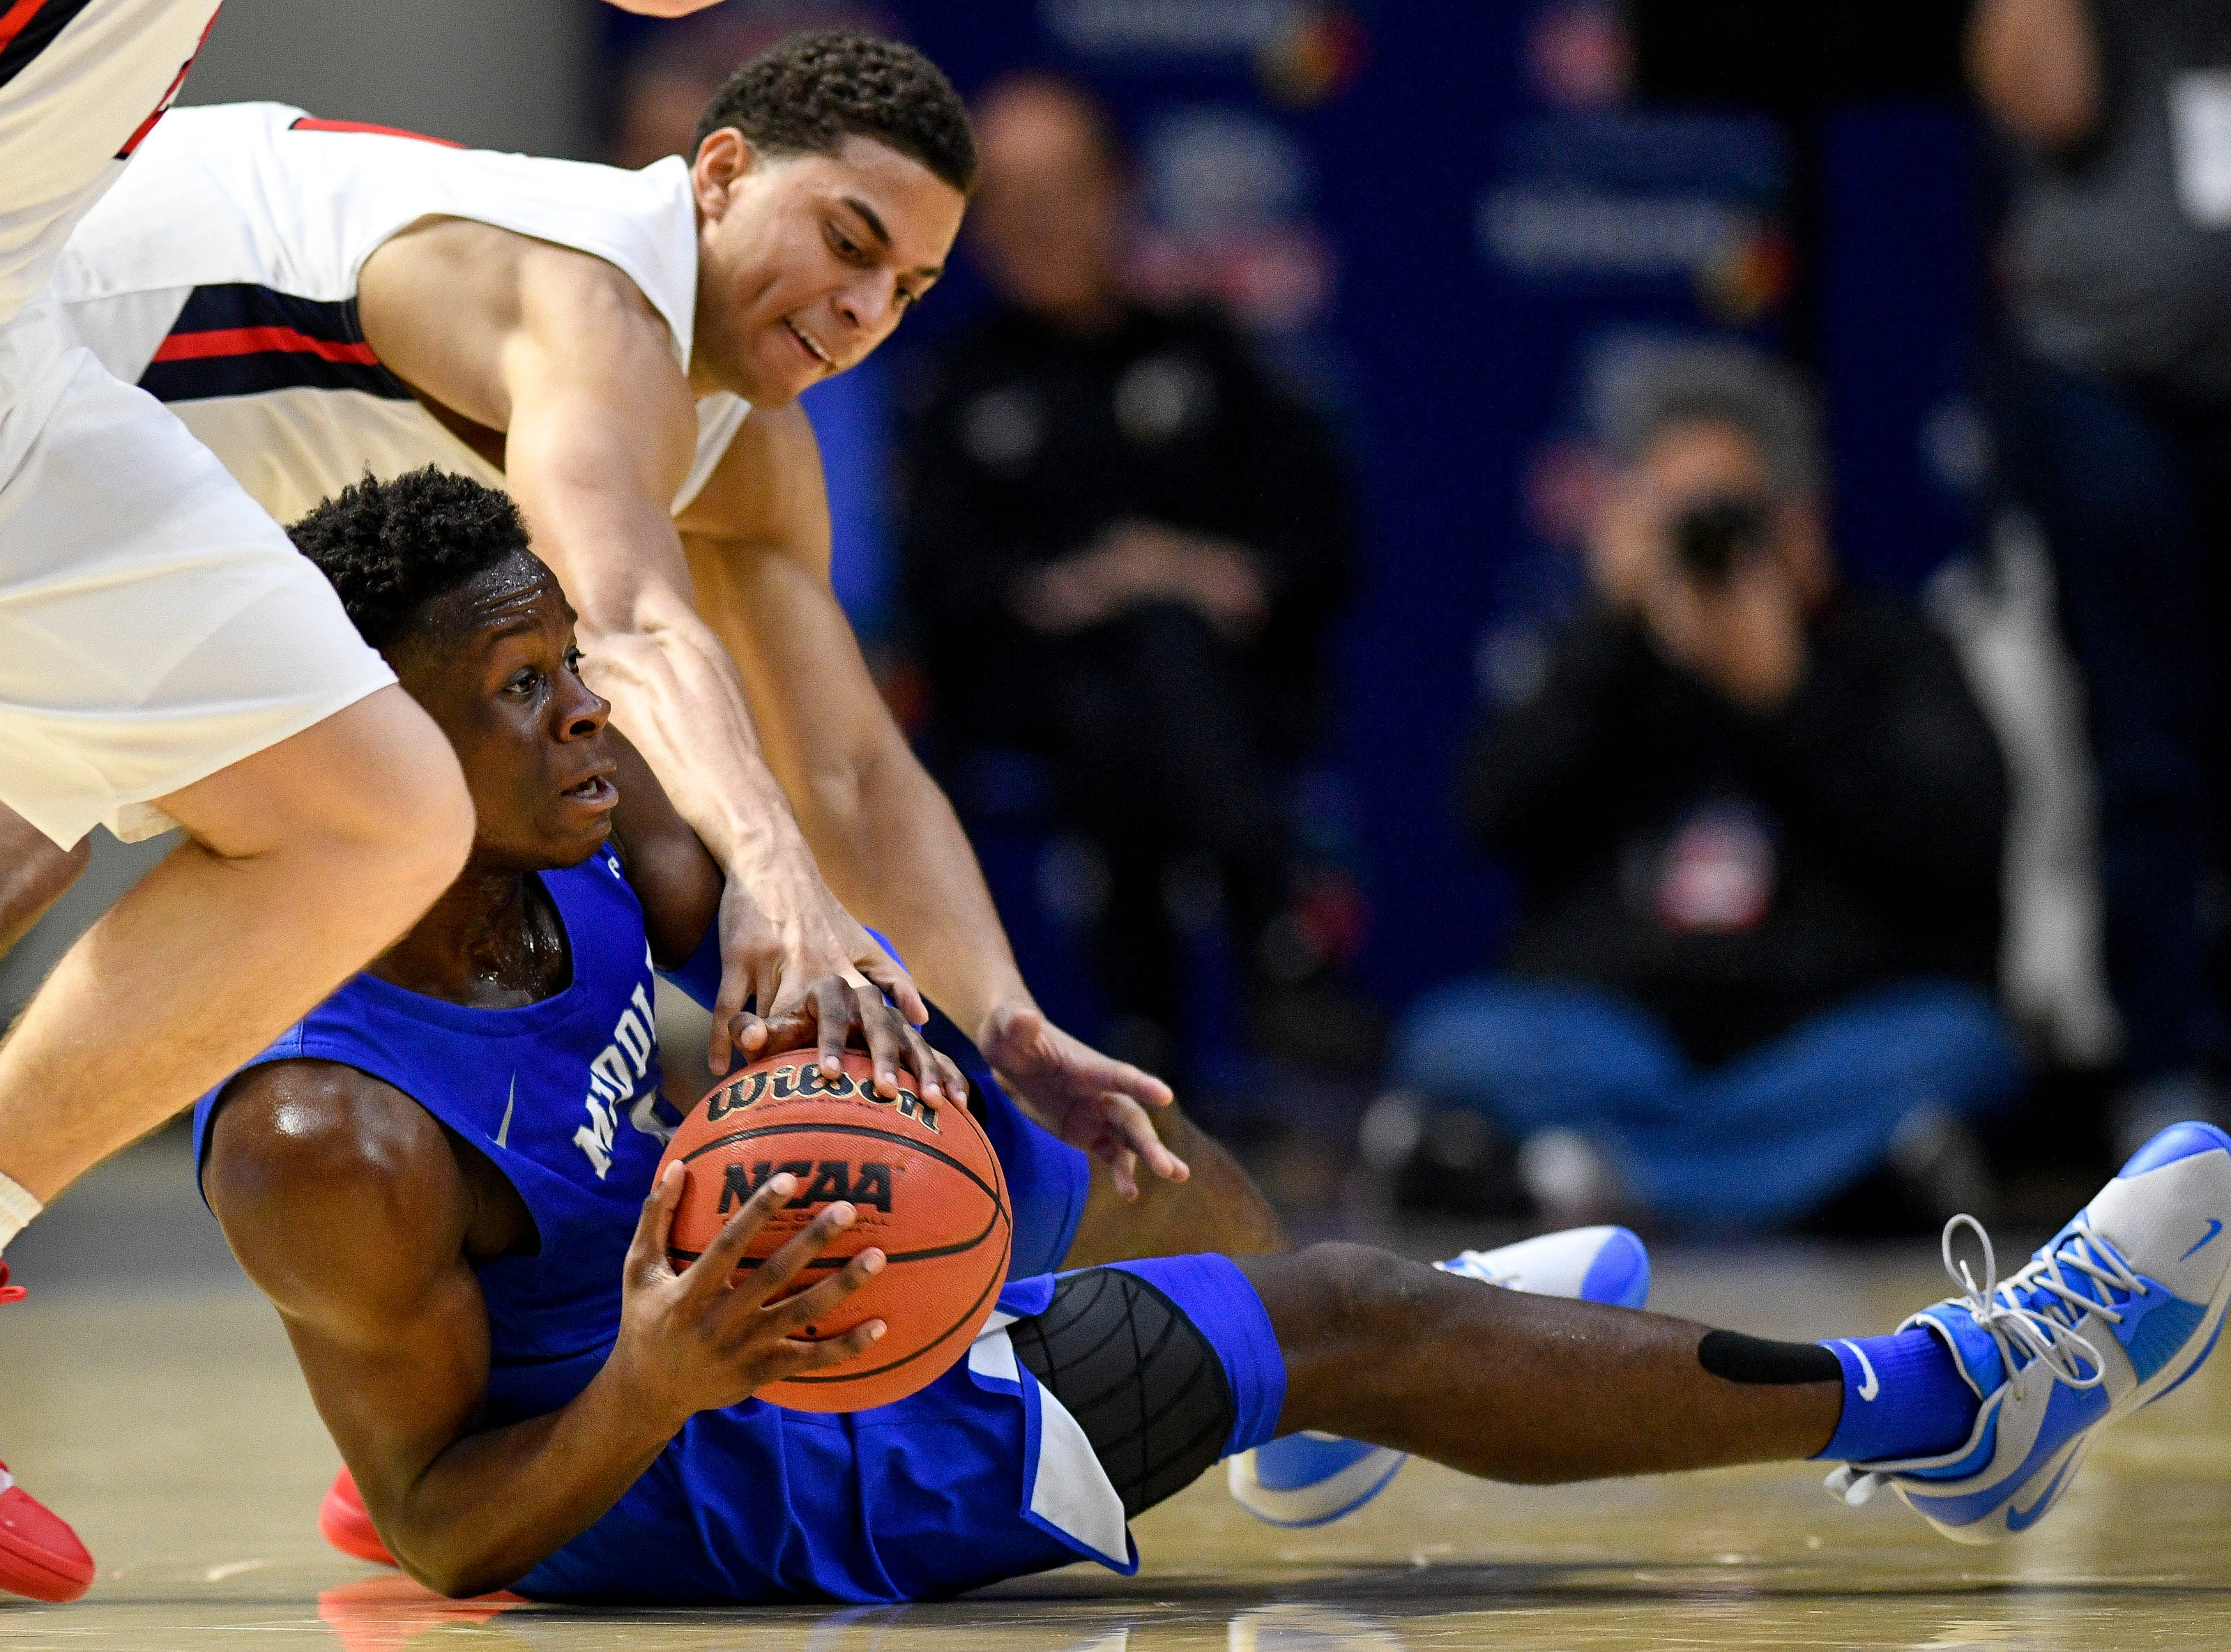 MTSU guard Junior Farquhar (1) battles Belmont guard Kevin McClain (11) during the second half at the Curb Event Center Arena in Nashville, Tenn., Monday, Nov. 12, 2018.